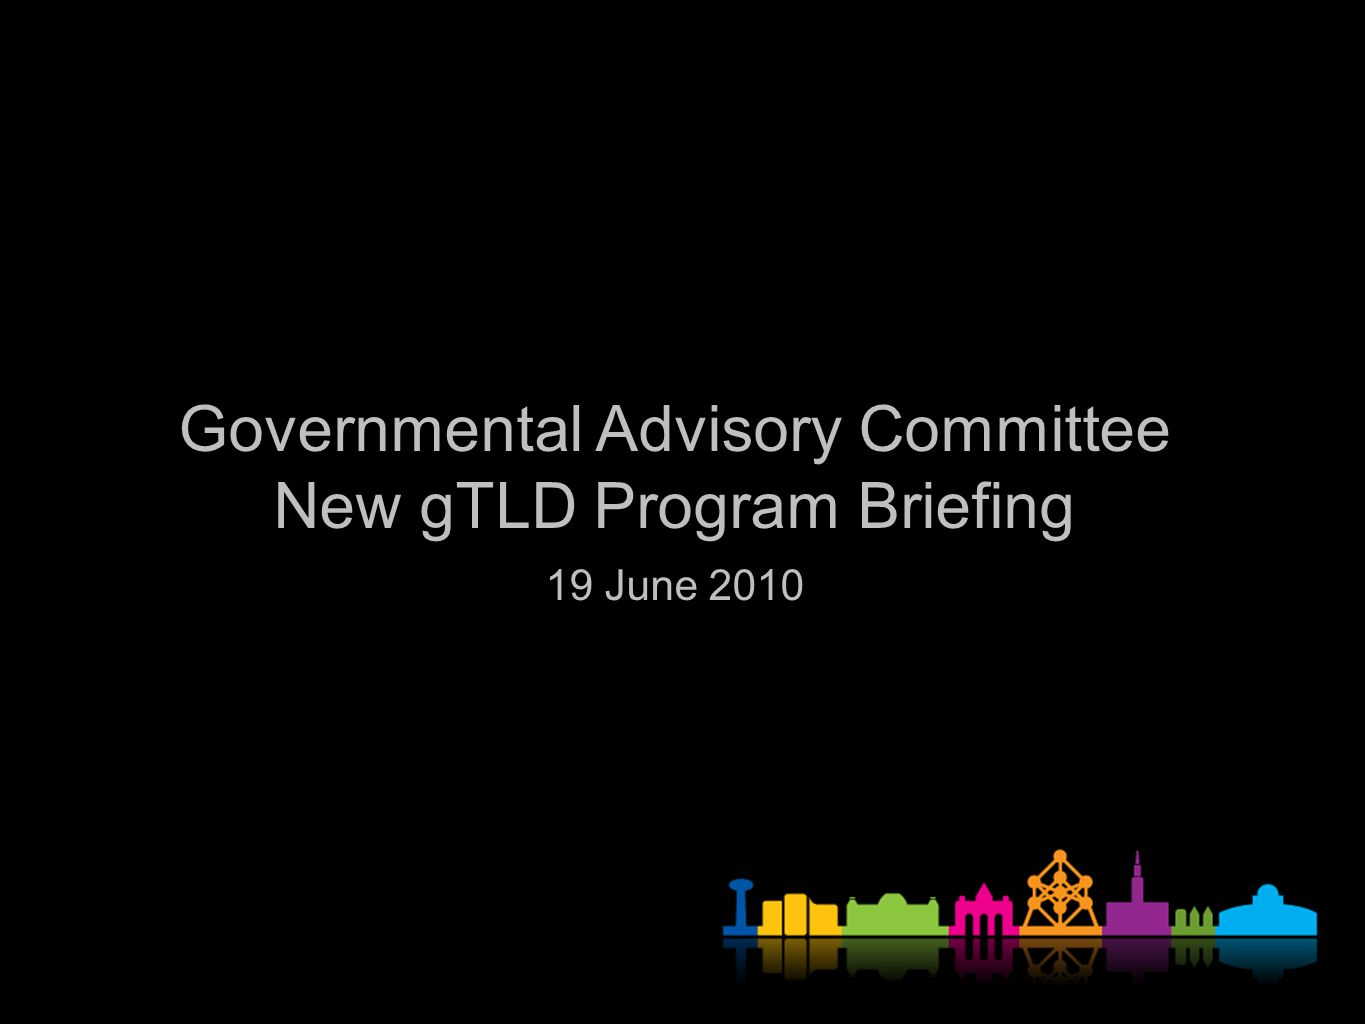 Governmental Advisory Committee New gTLD Program Briefing 19 June 2010